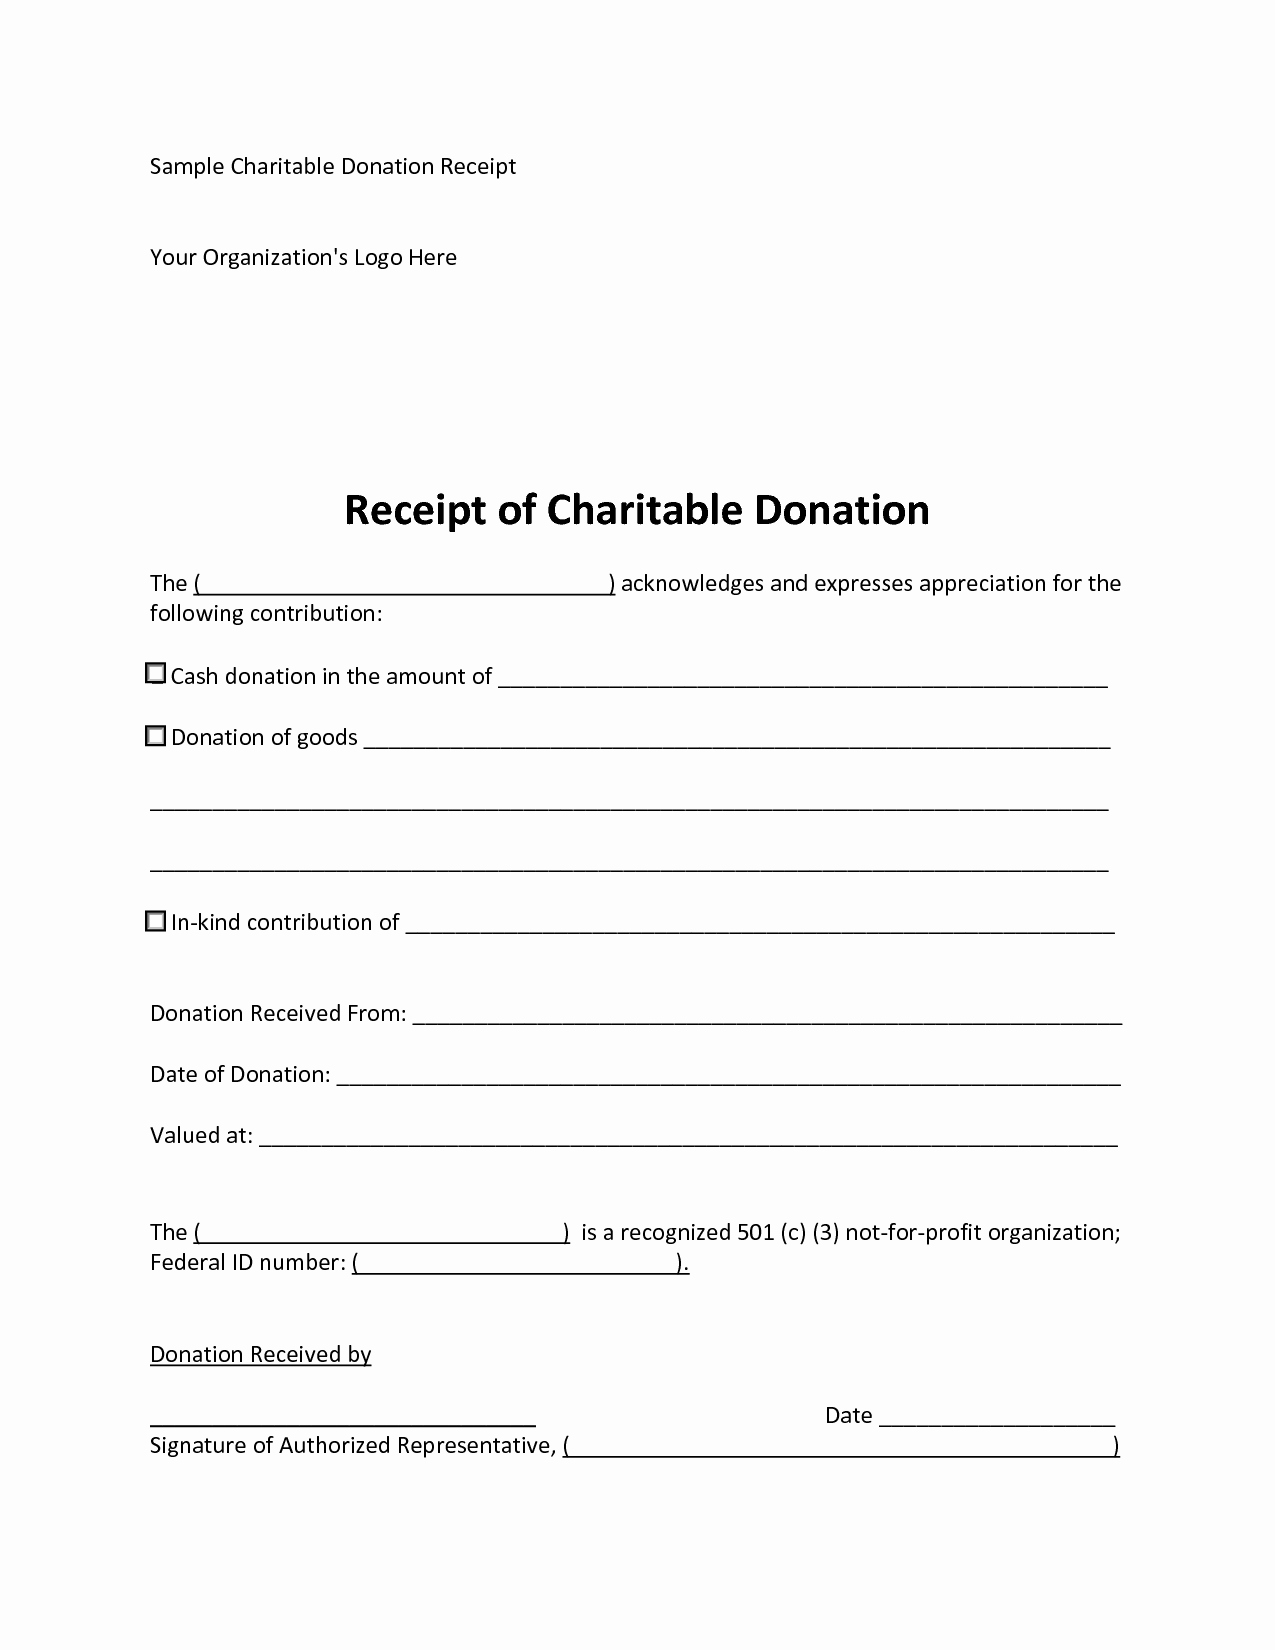 Charitable Donation Receipt Template Awesome 6 Best Of 501c3 Donation Receipt Template Charity